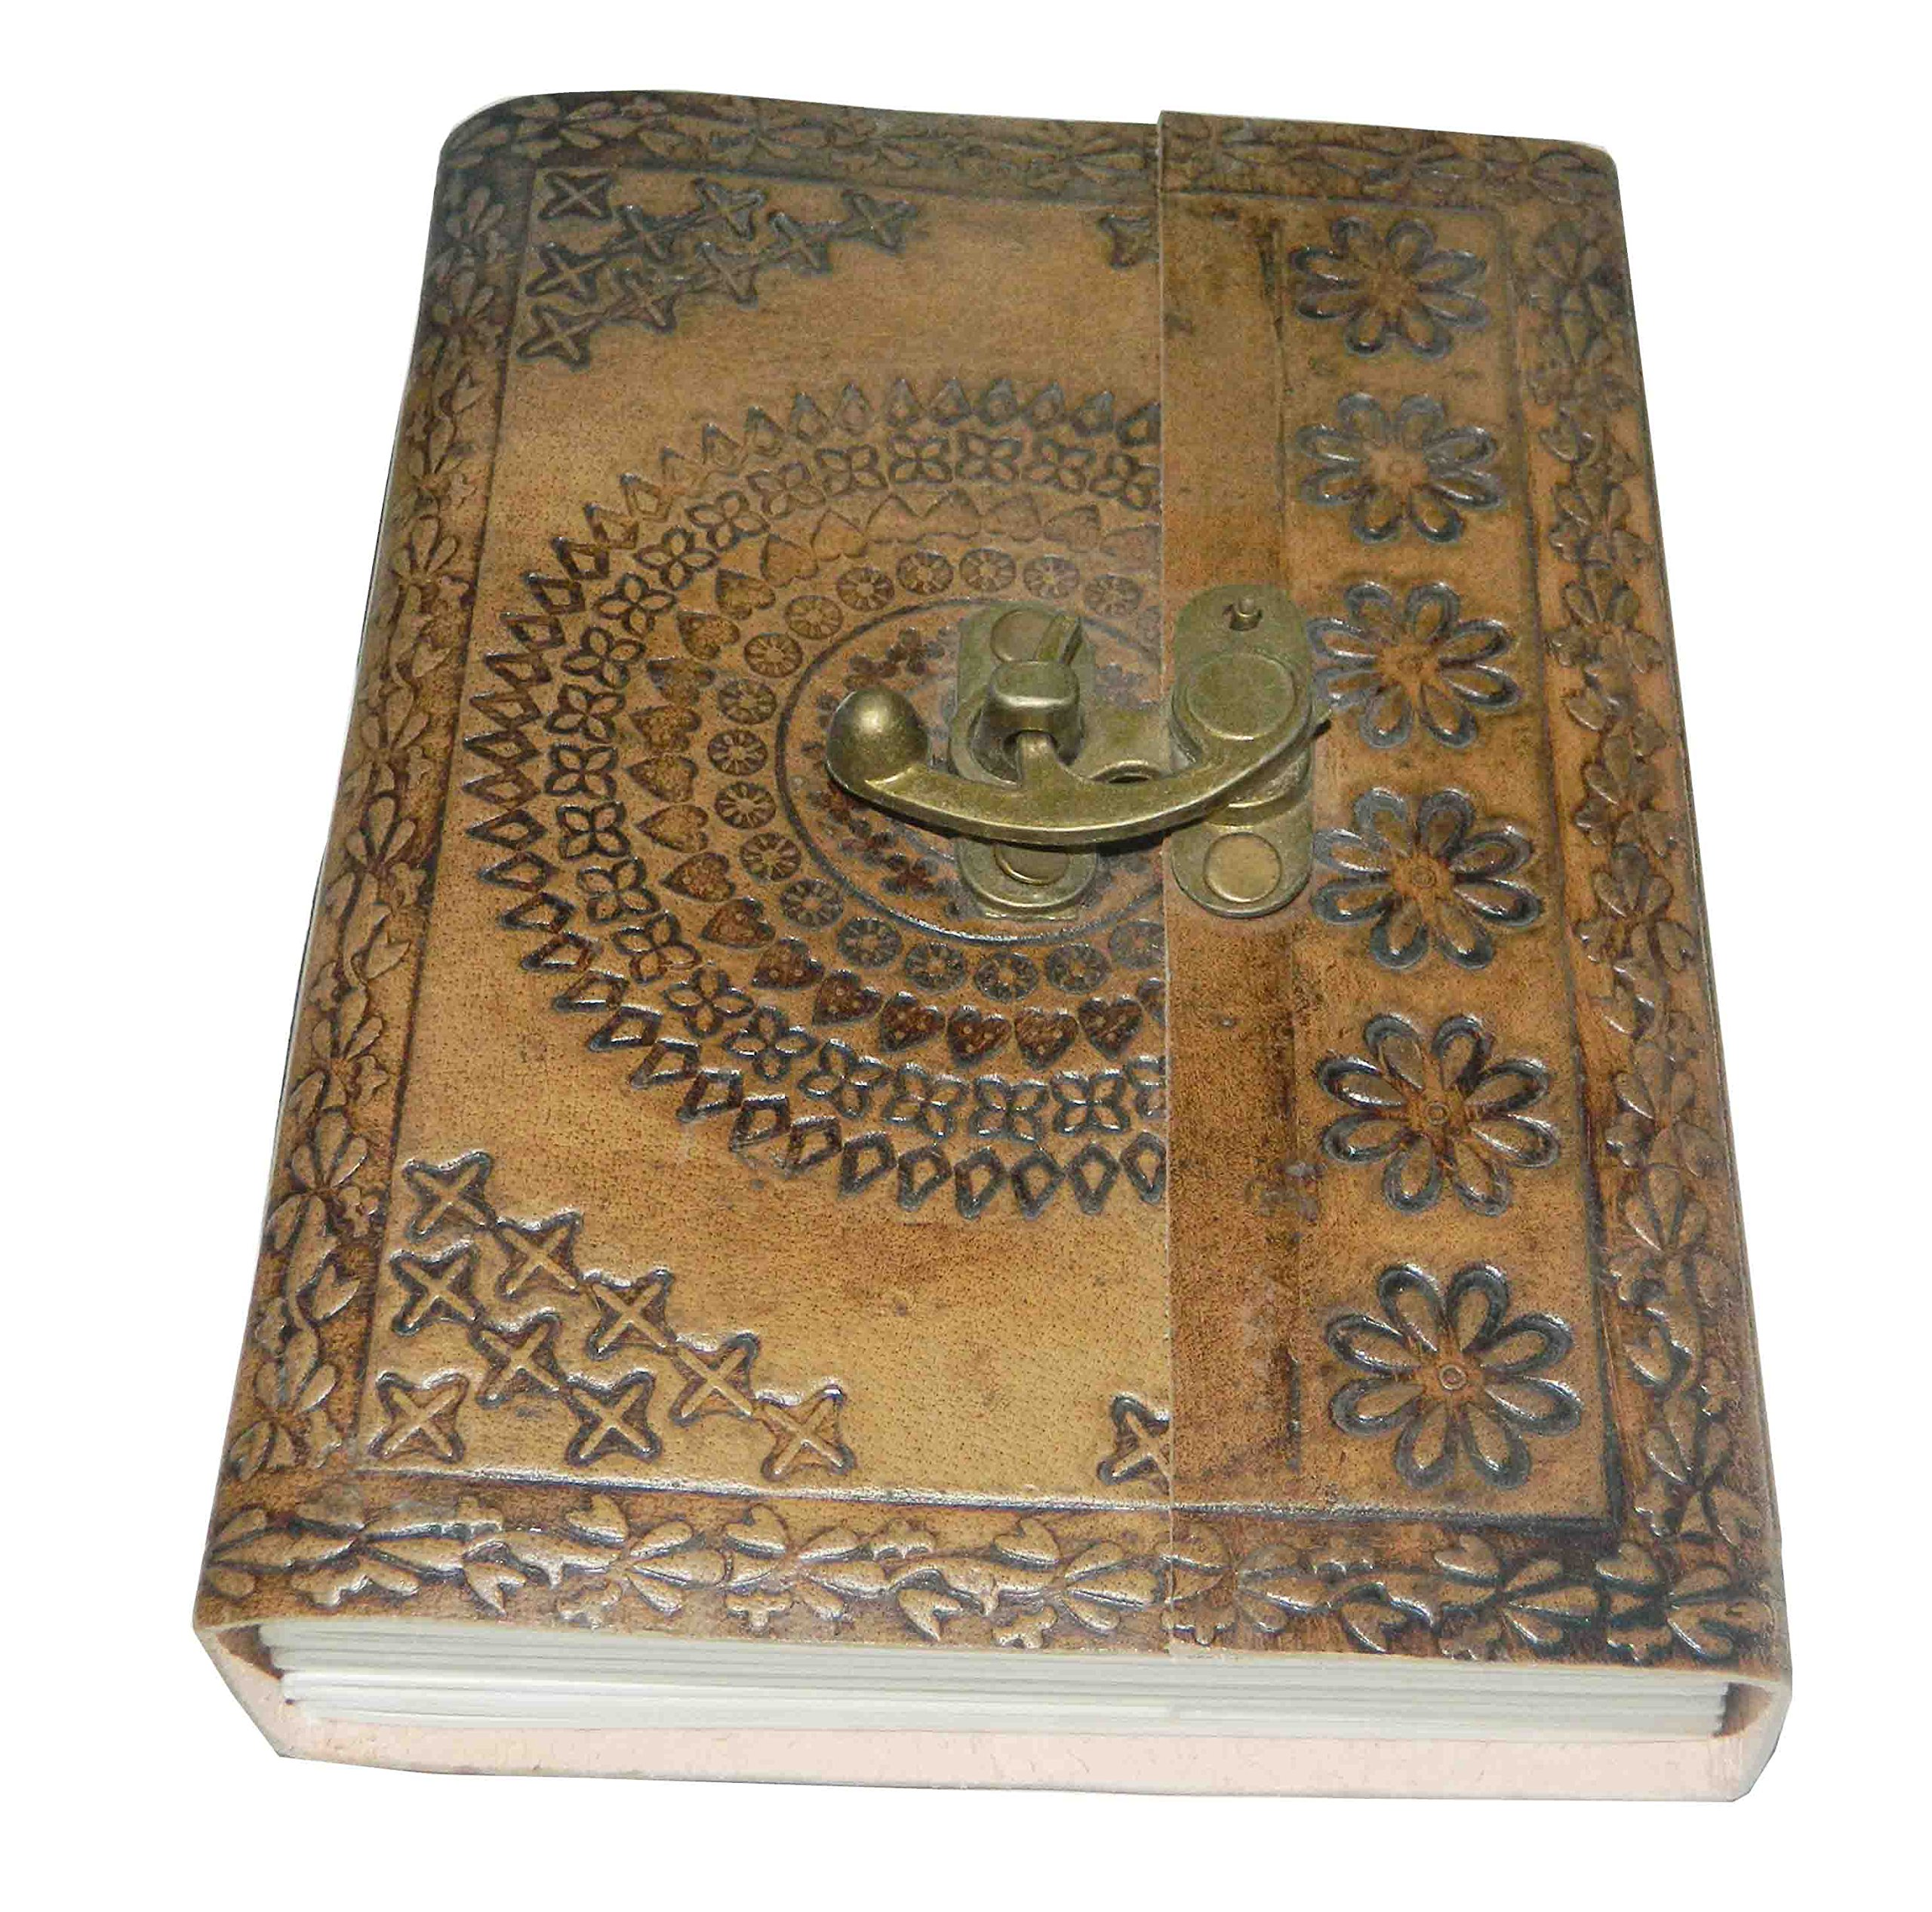 M&N Handmade Tanned Leather Journal, Notebook, Blank Pages, Metal Clasp, 7''x5''